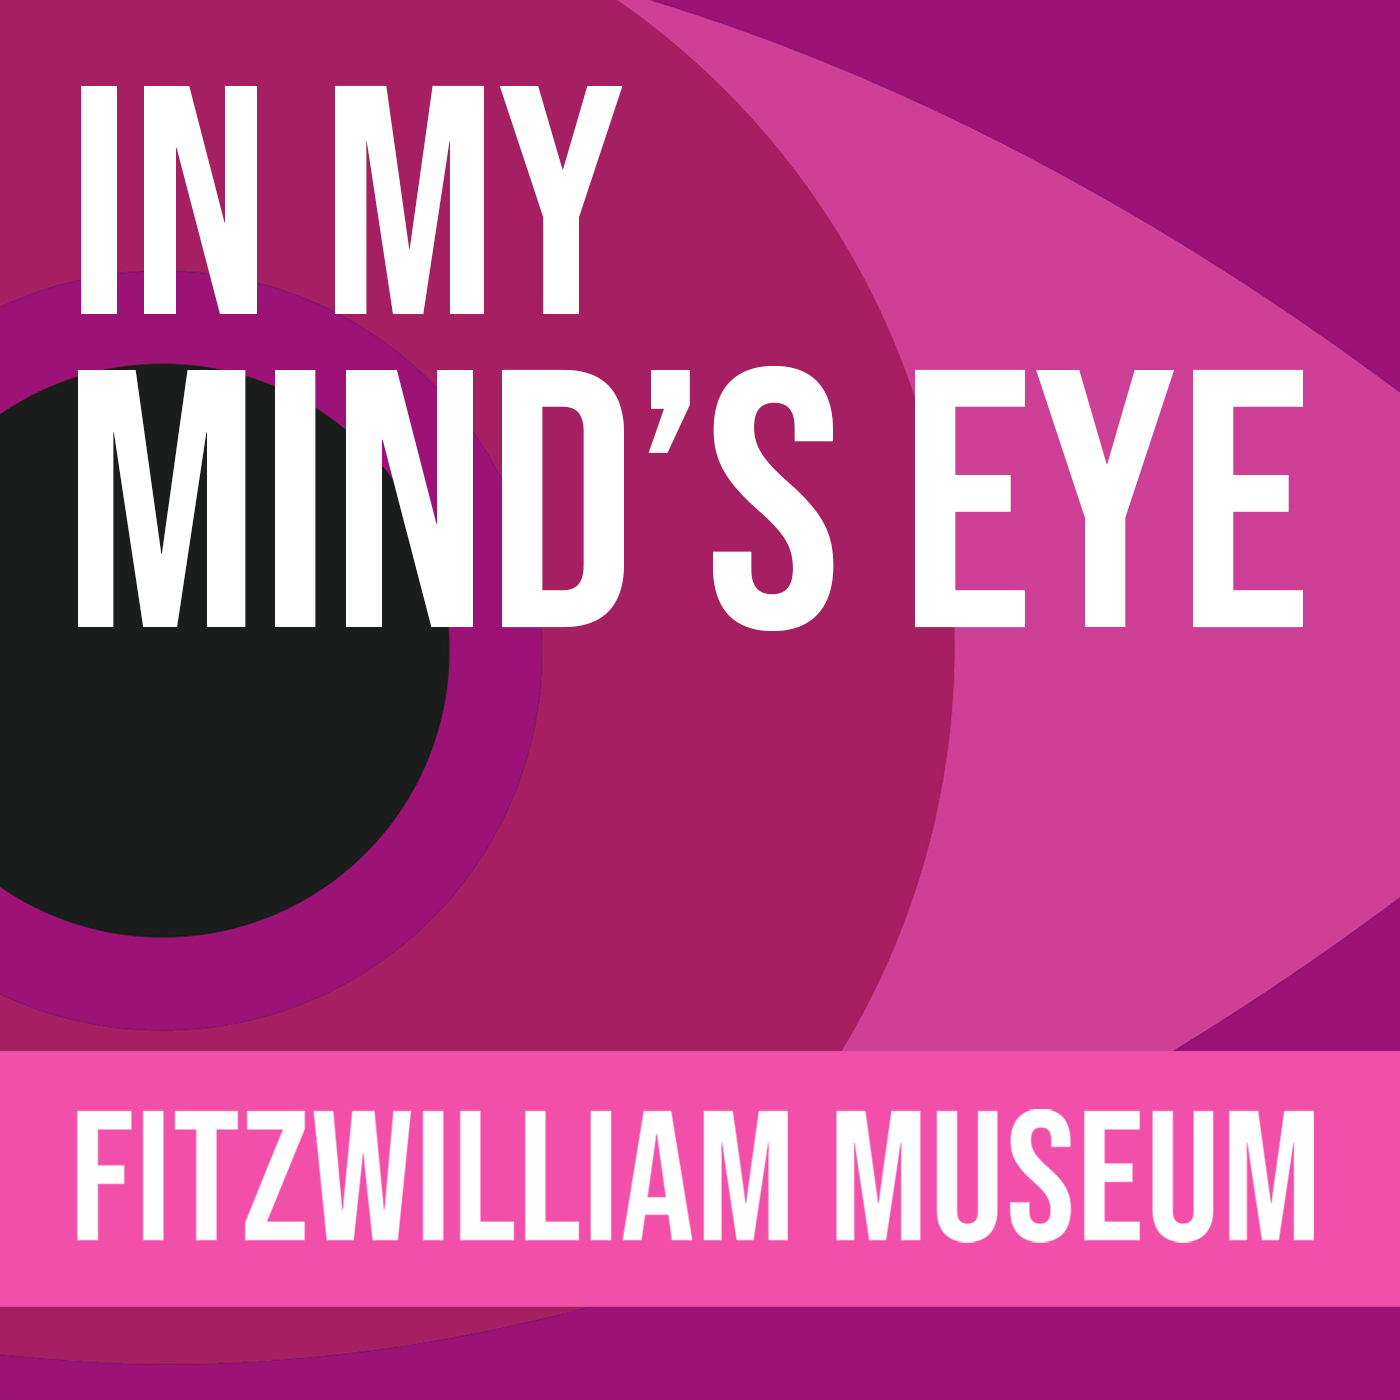 In My Mind's Eye: the museum explored